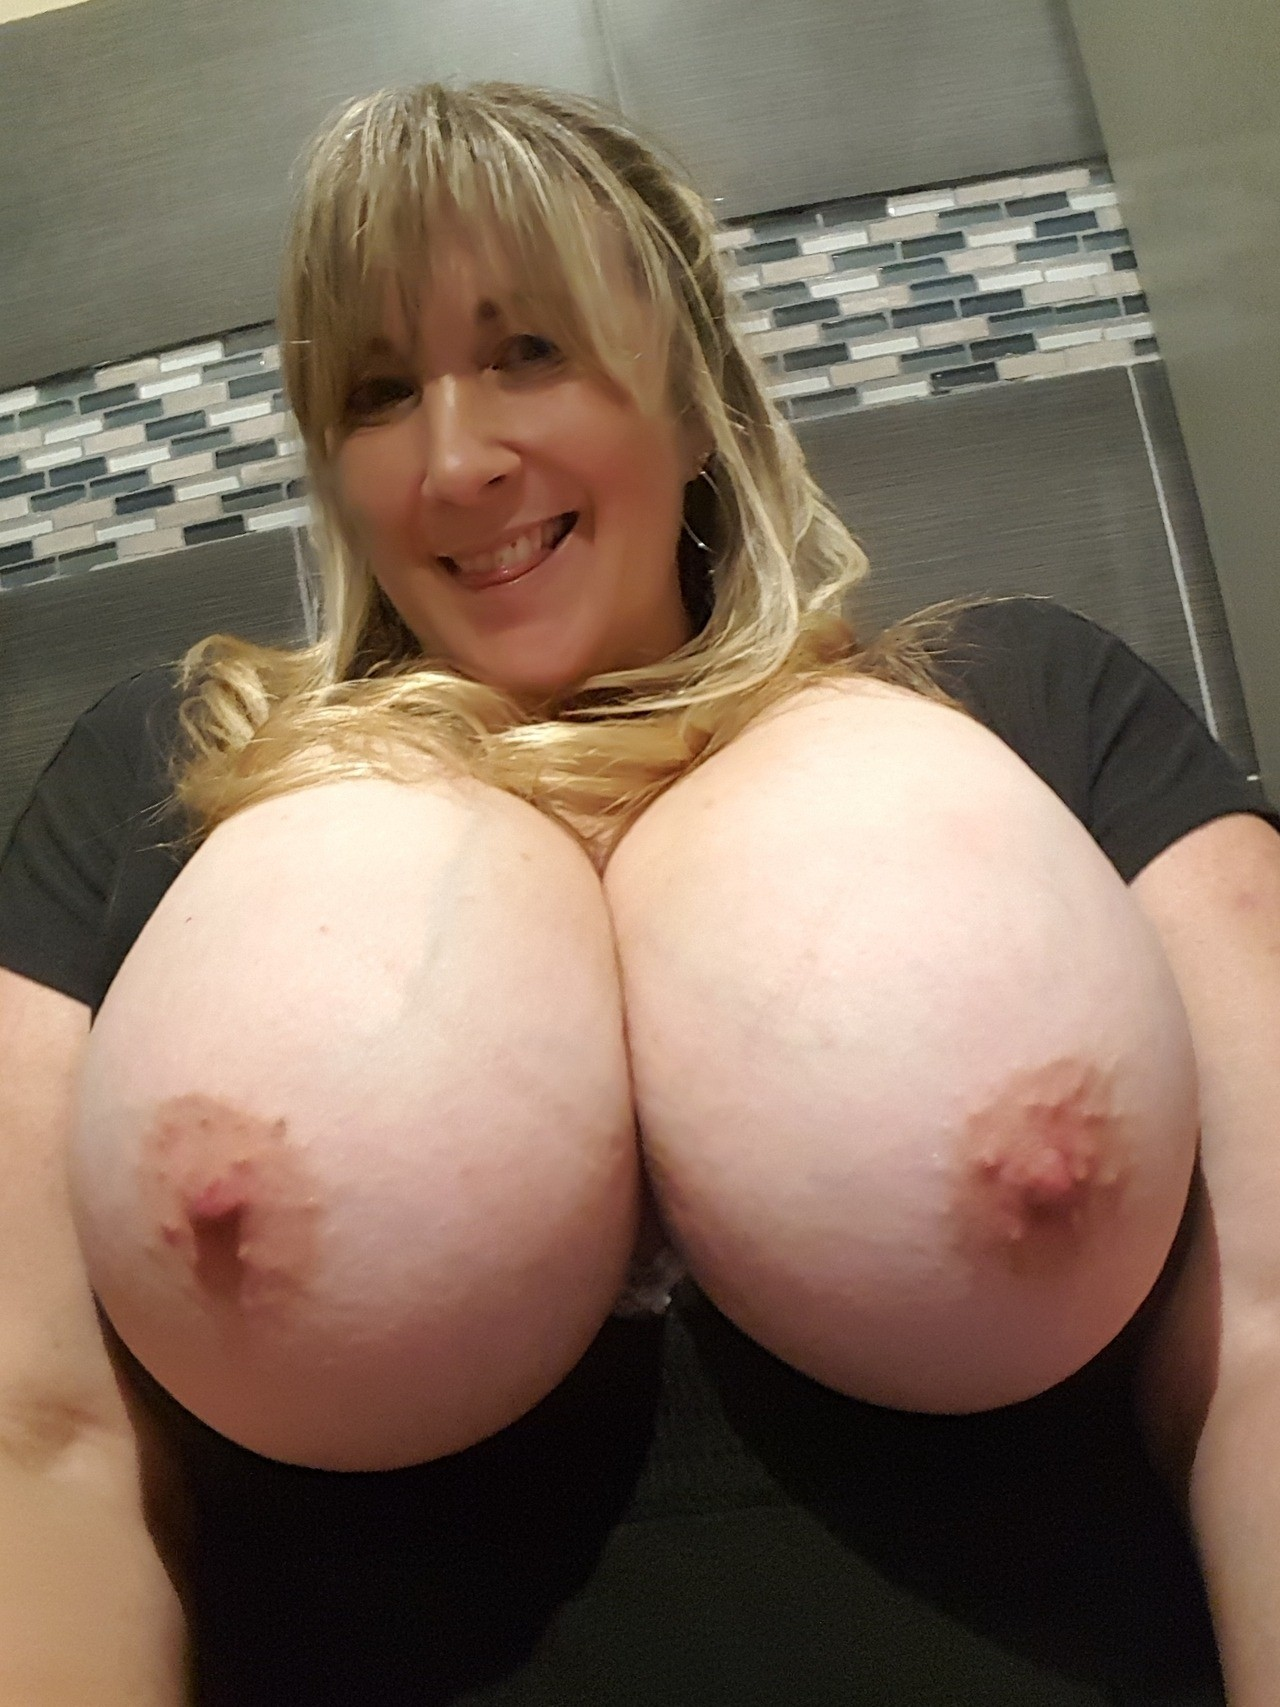 Post in topic Nude Selfies by NaughtyMommy